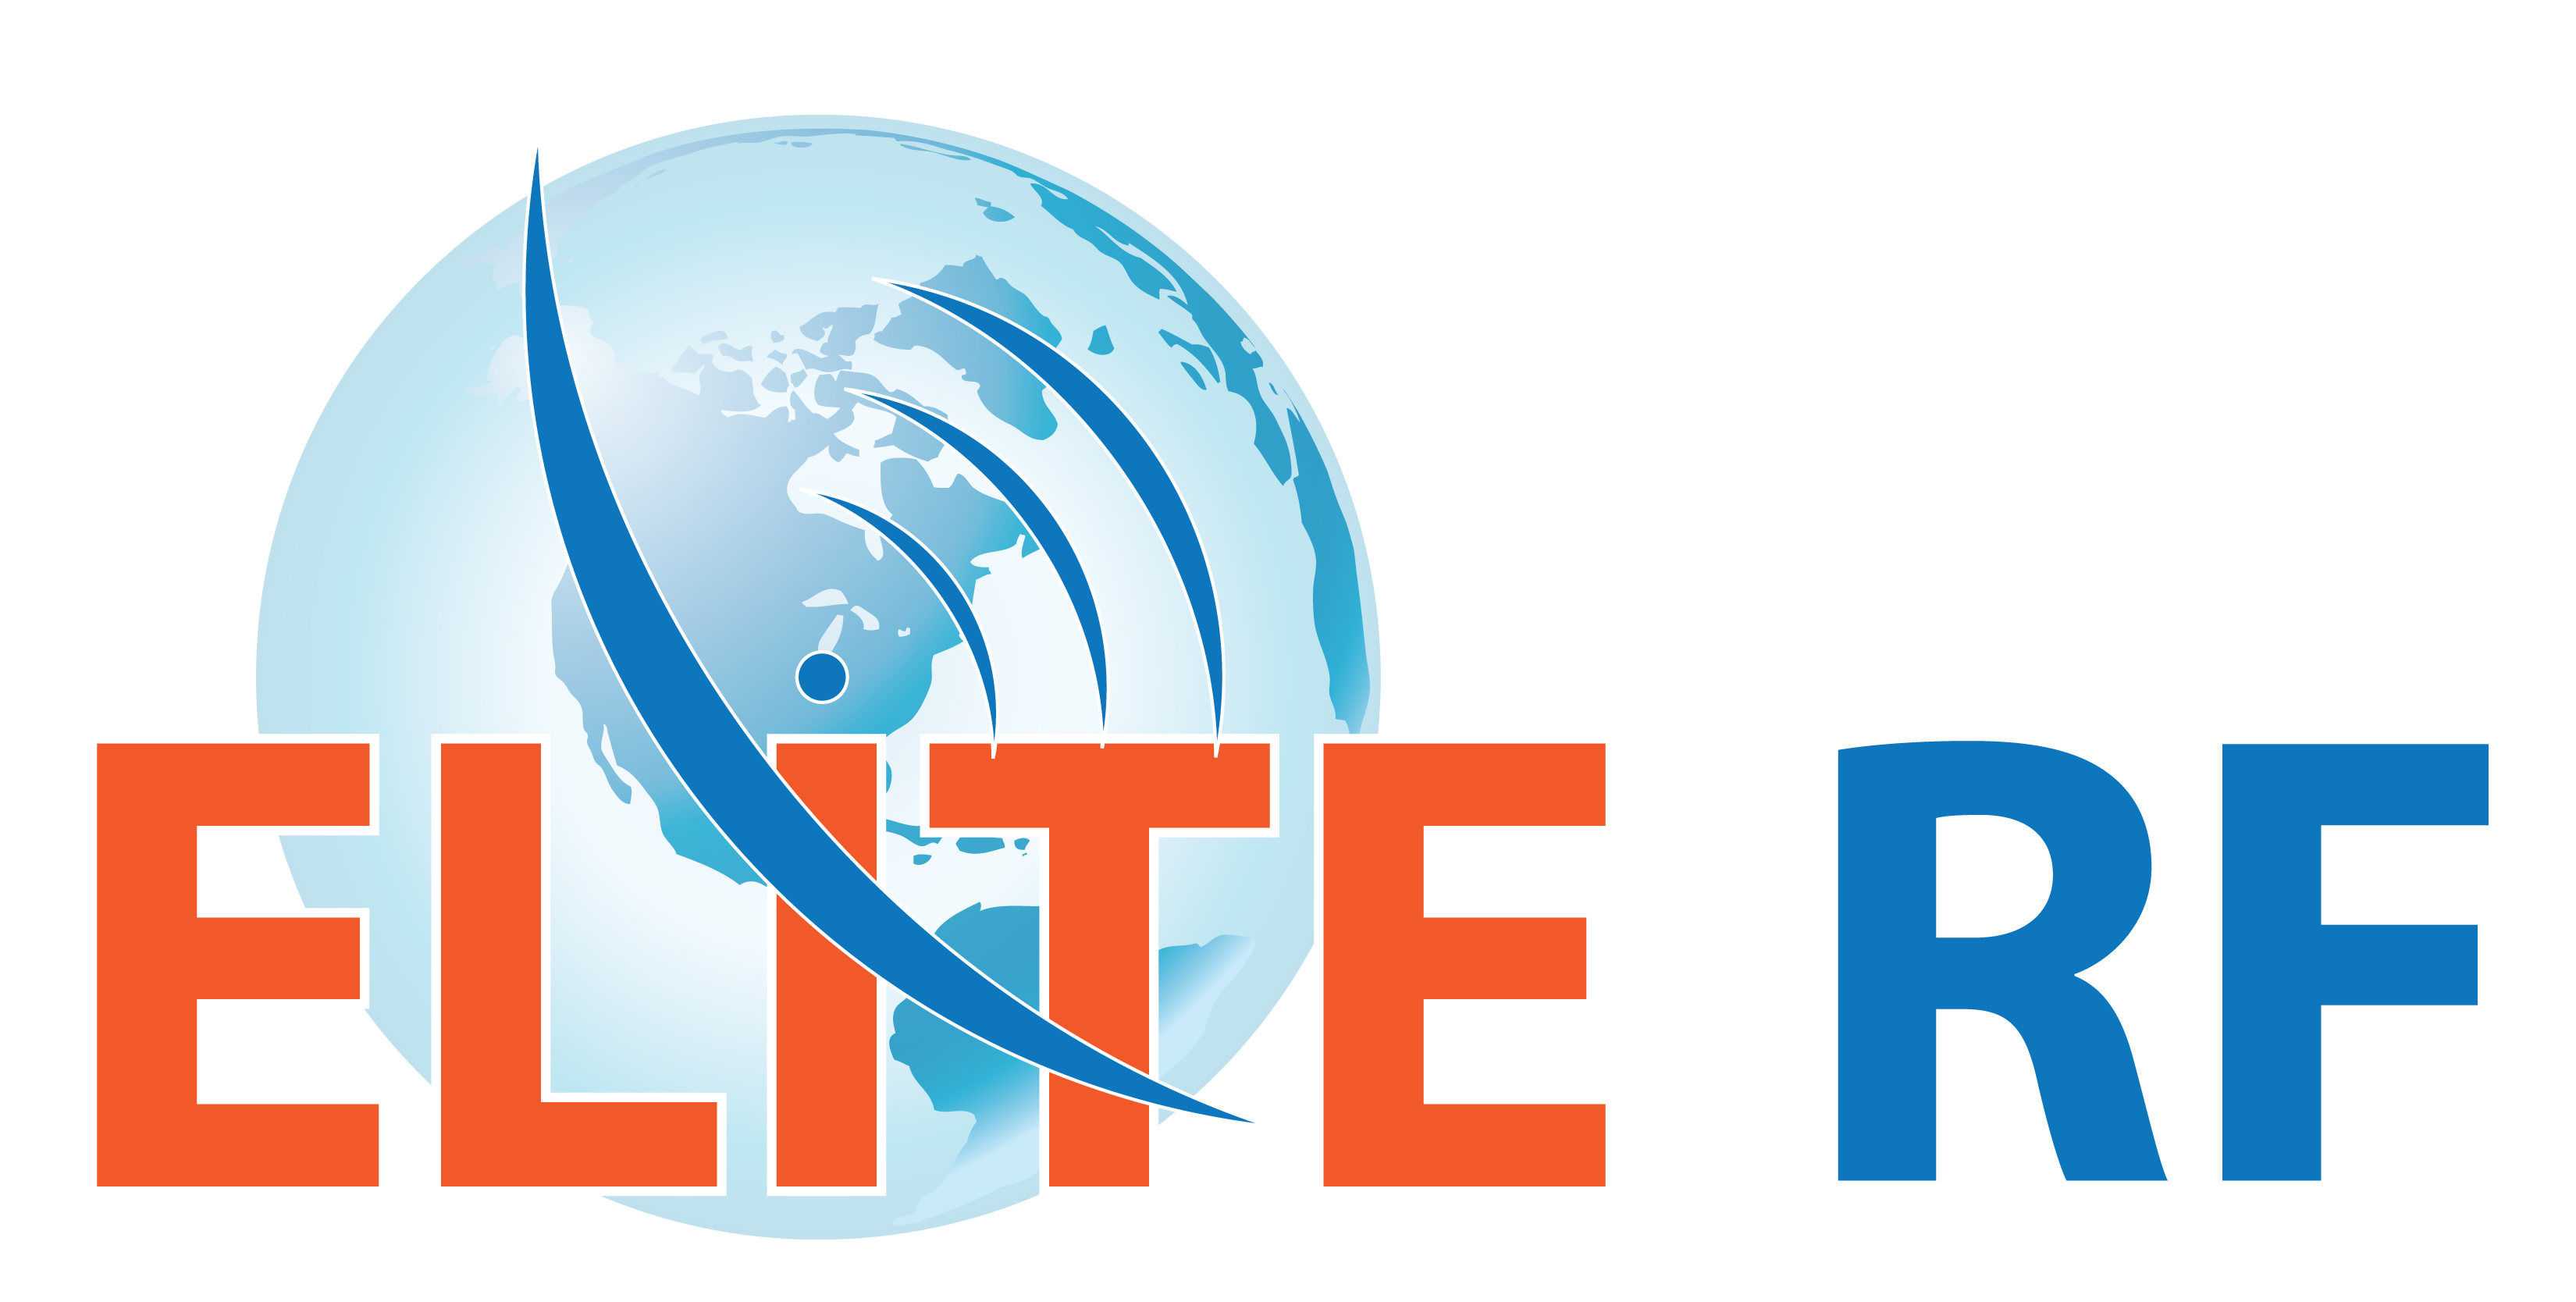 Elite RF Introduces New High-Power, Multi-Octave RF Amplifier